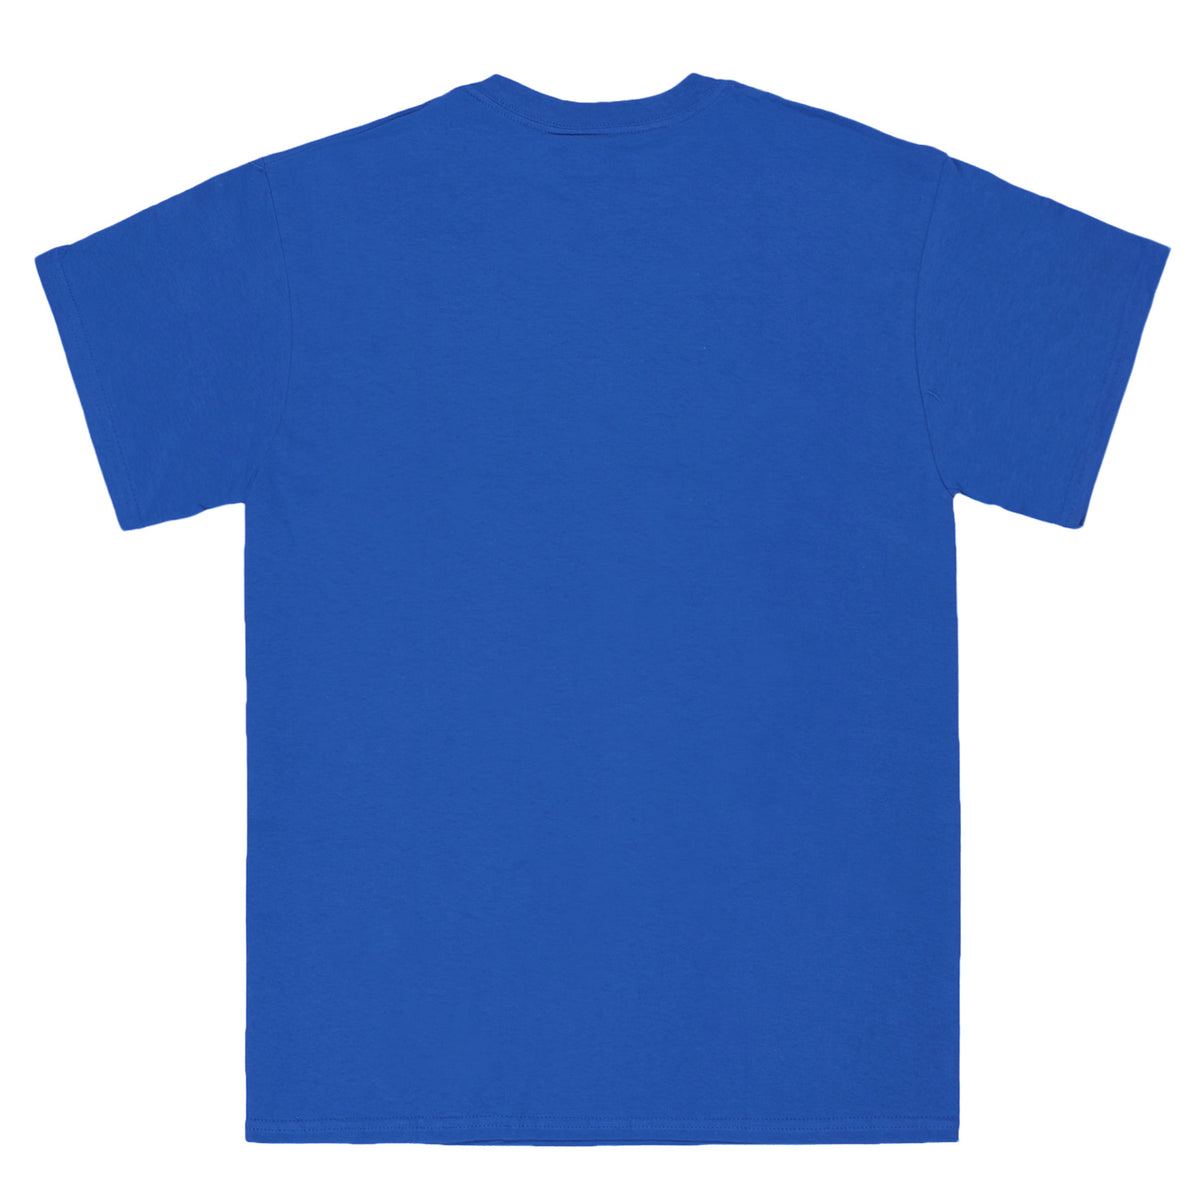 CAVENDOLI royal blue tee - RAVE skateboards